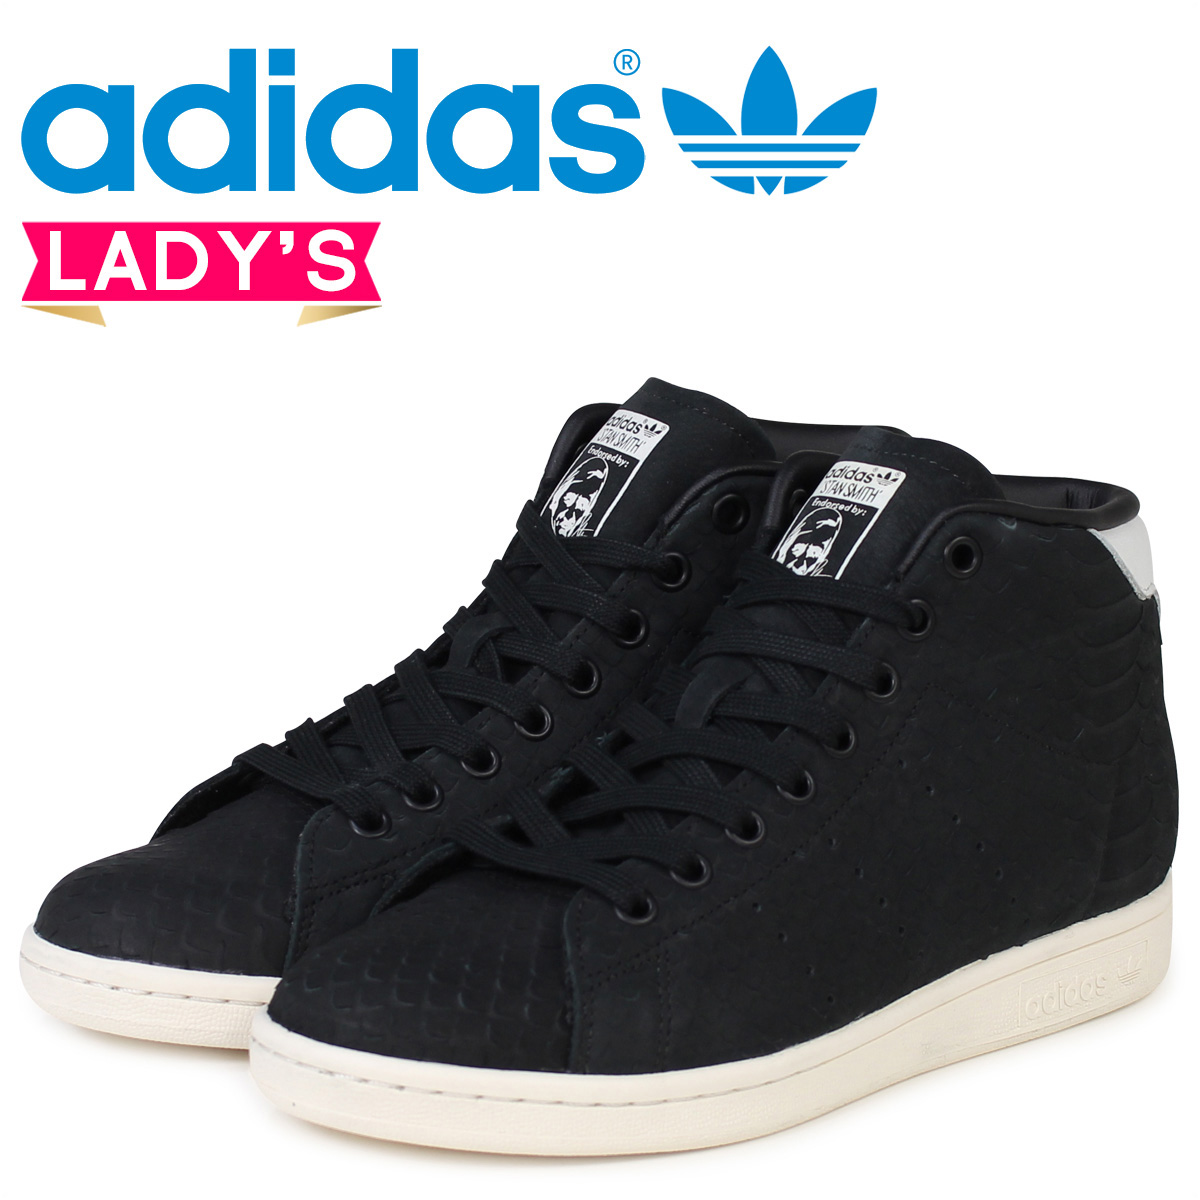 on sale 06f03 9cc01 Adidas Stan Smith Womens sneakers adidas originals STAN SMITH MID W BB4863  shoes black originals [11 / 26 new in stock]